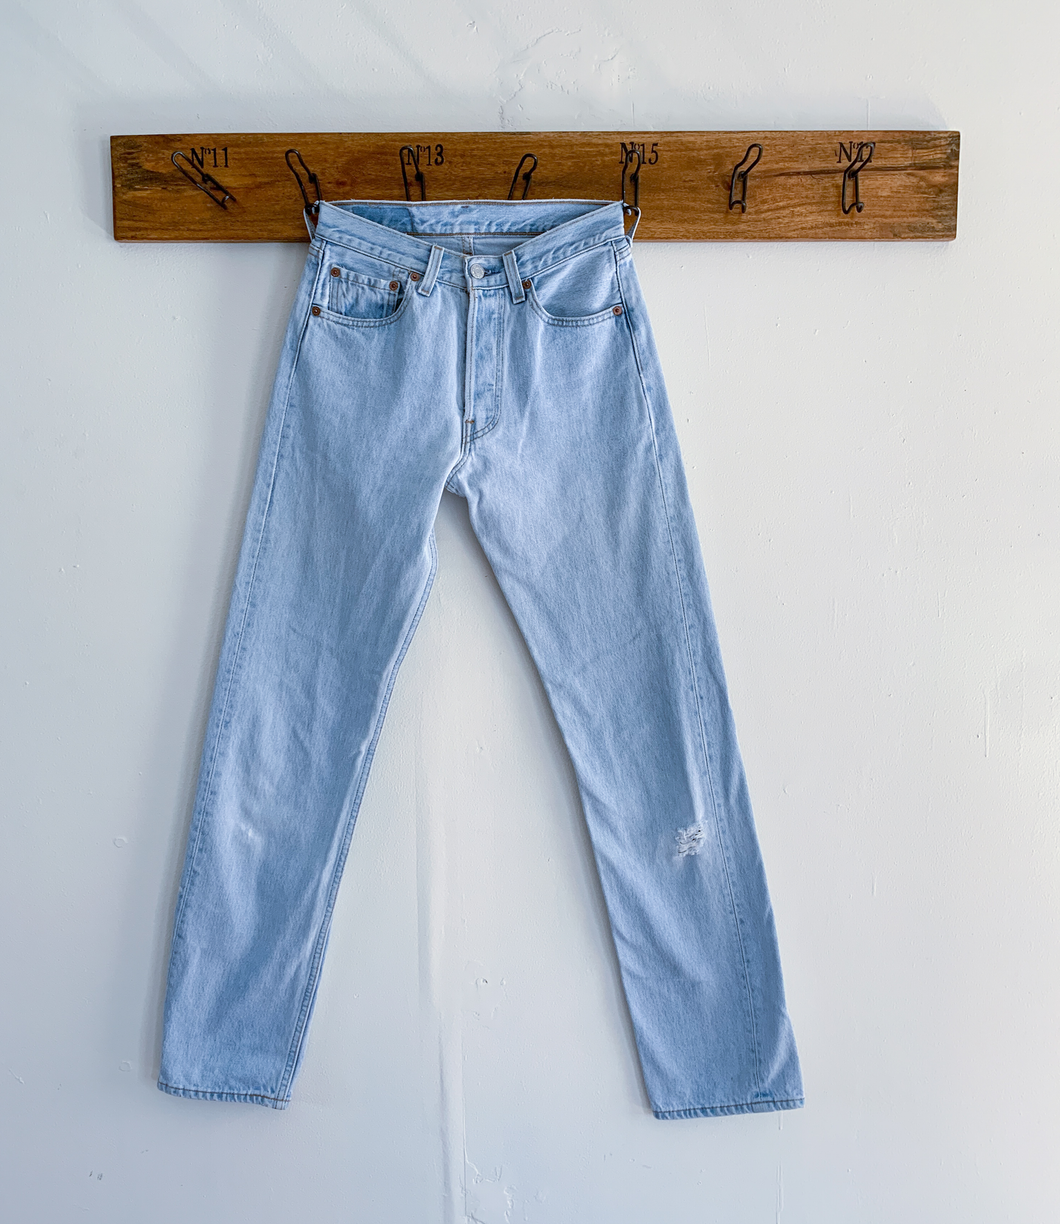 Levi's 501 light wash